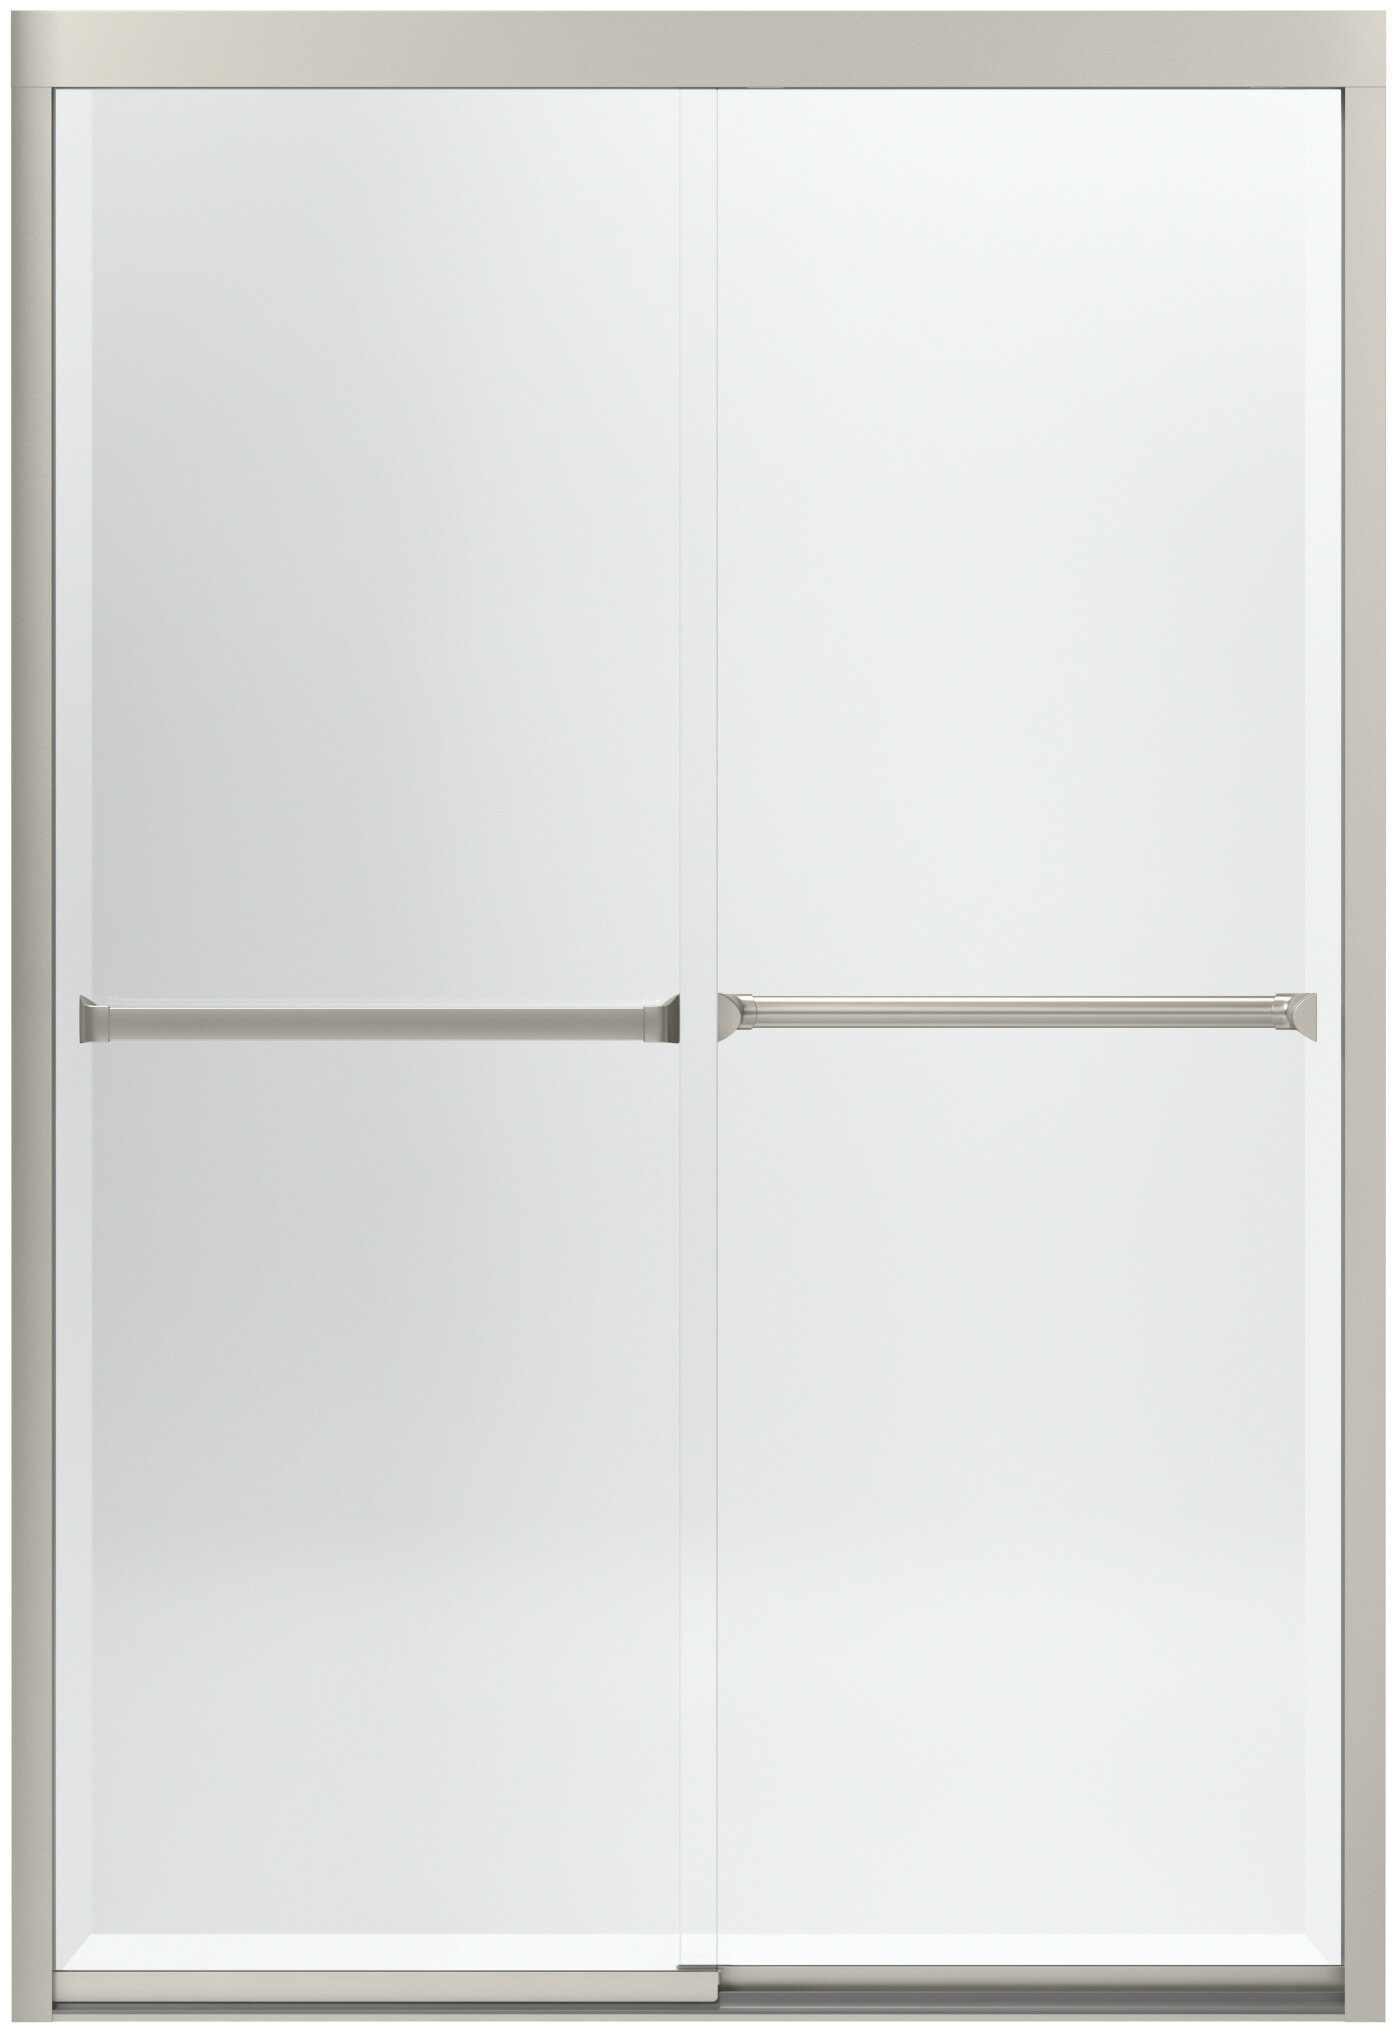 Sterling By Kohler Meritor 47 63 X 69 Byp Shower Door With Cleancoat Technology Wayfair